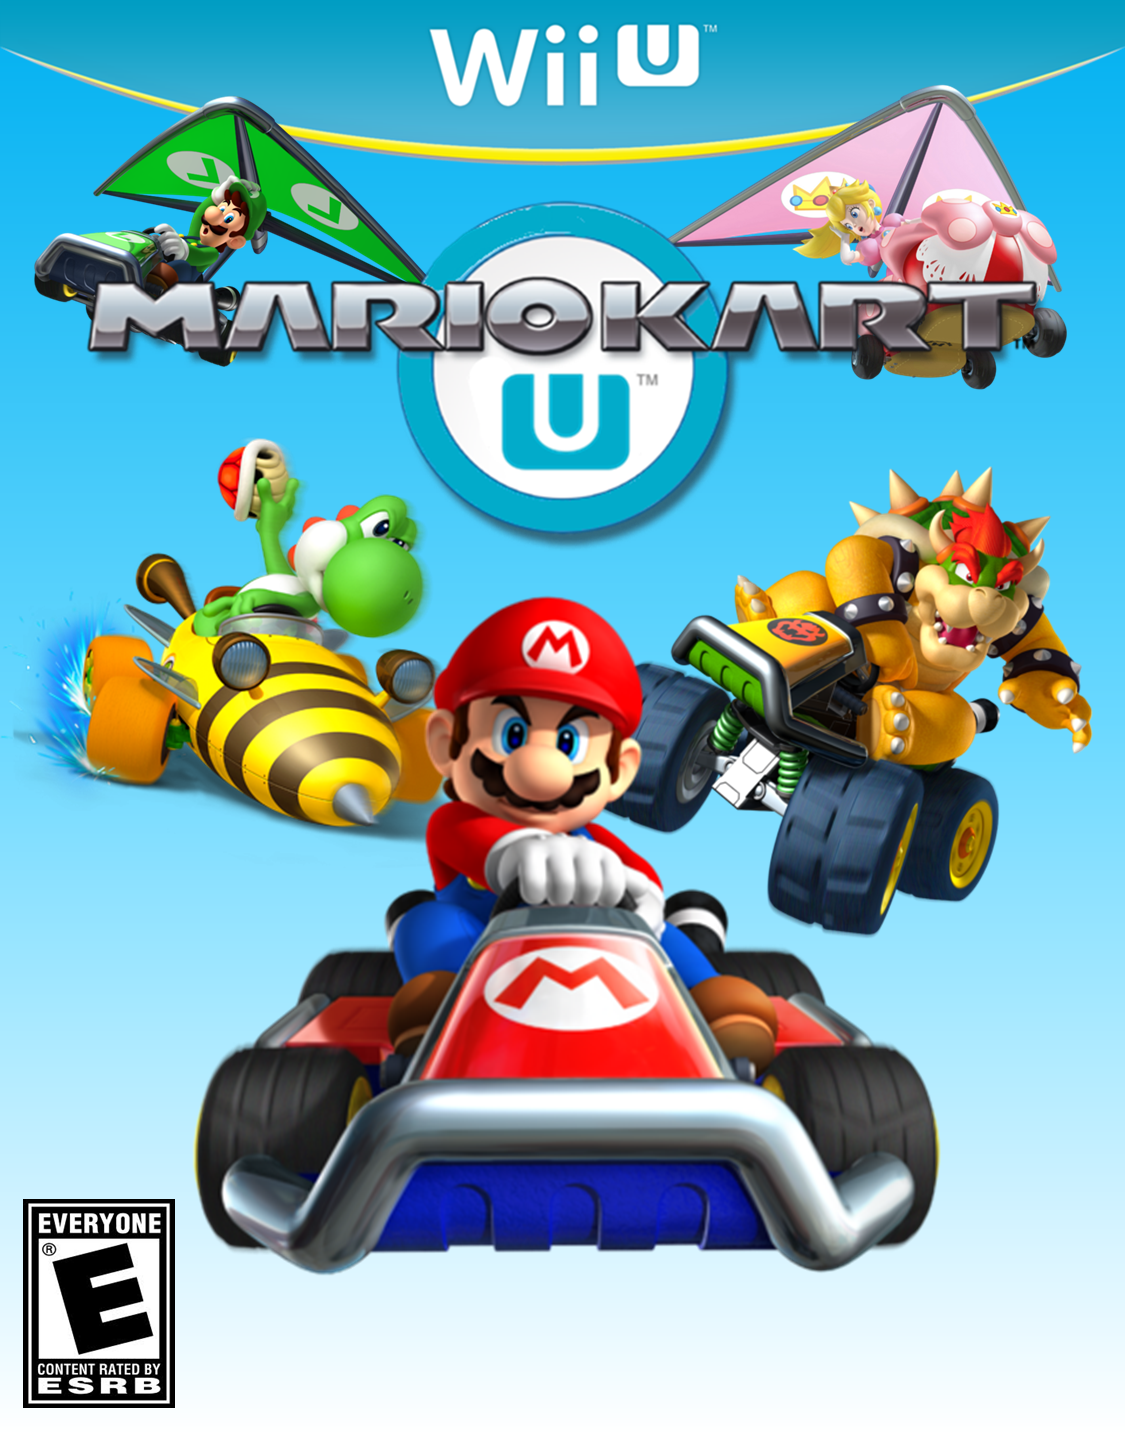 Mario kart for the wii u - Cicis pizza san antonio tx